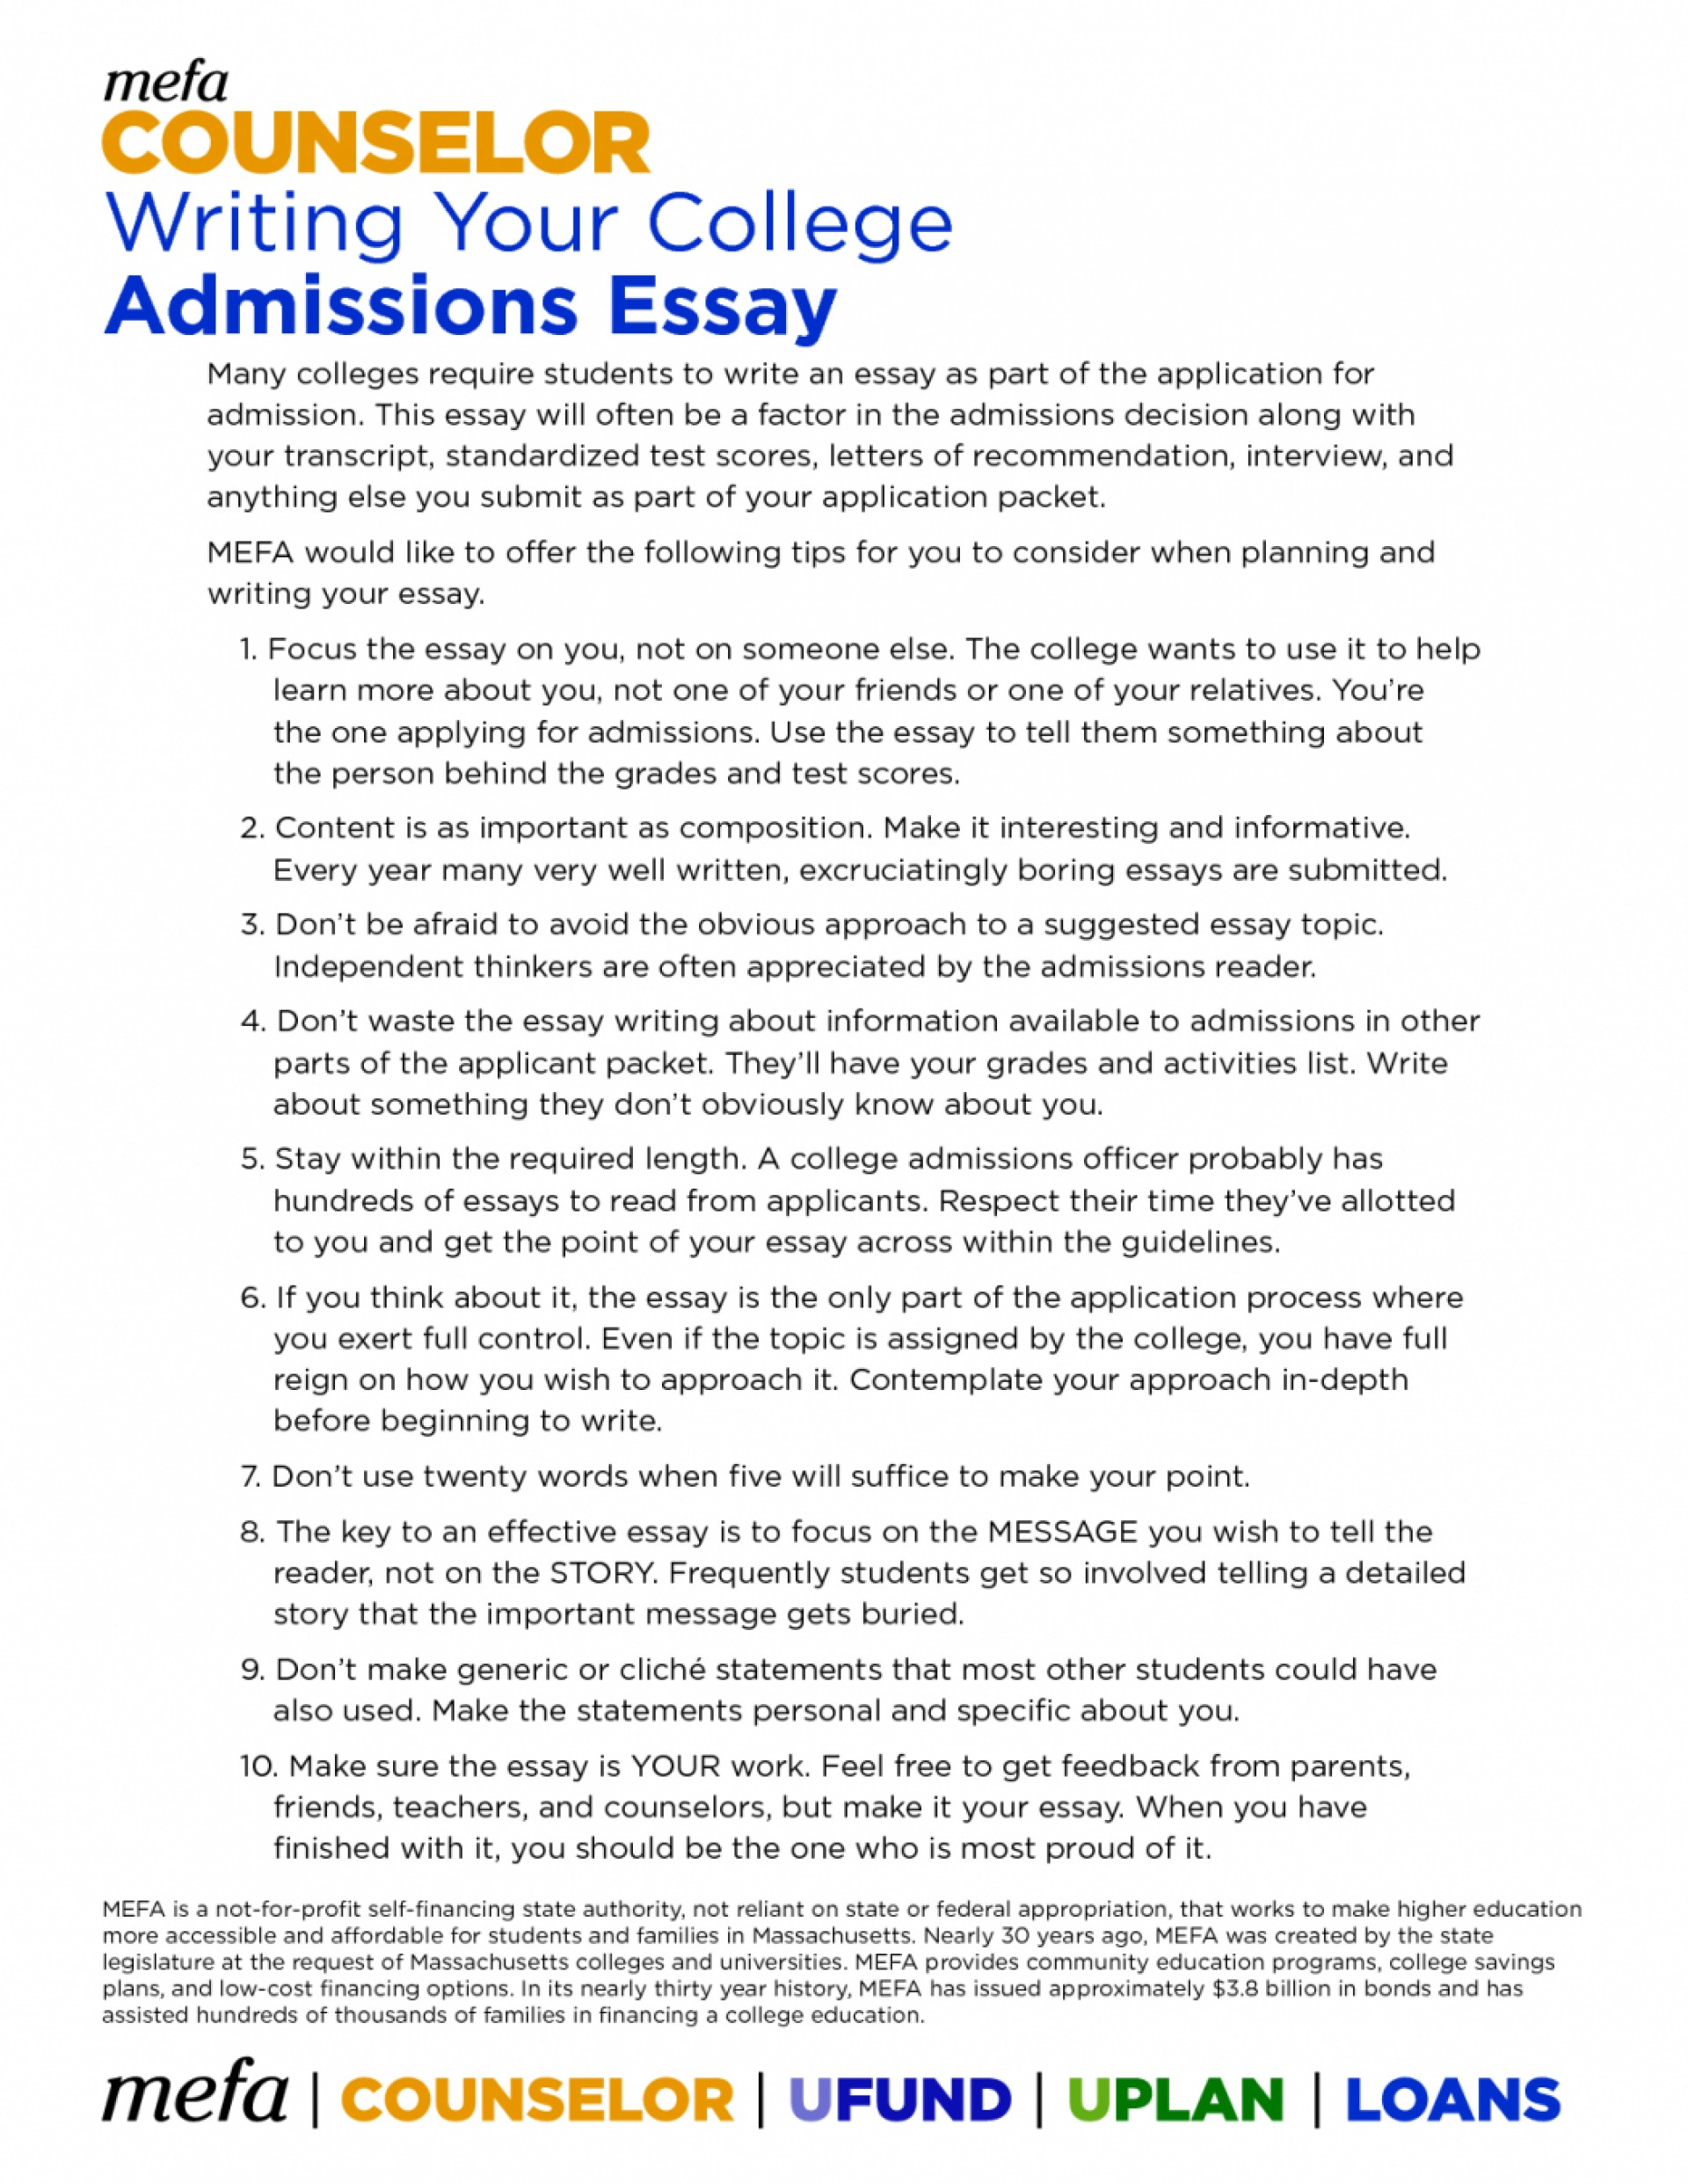 003 Writing Counselling Essay Get Help With Your Business Plan Effective Ppt F4r3a Course Communication Academic For Ielts English Samples Pdf Tips In Hindi 1048x1356 Example Excellent Topics Questions Guidance And 1920